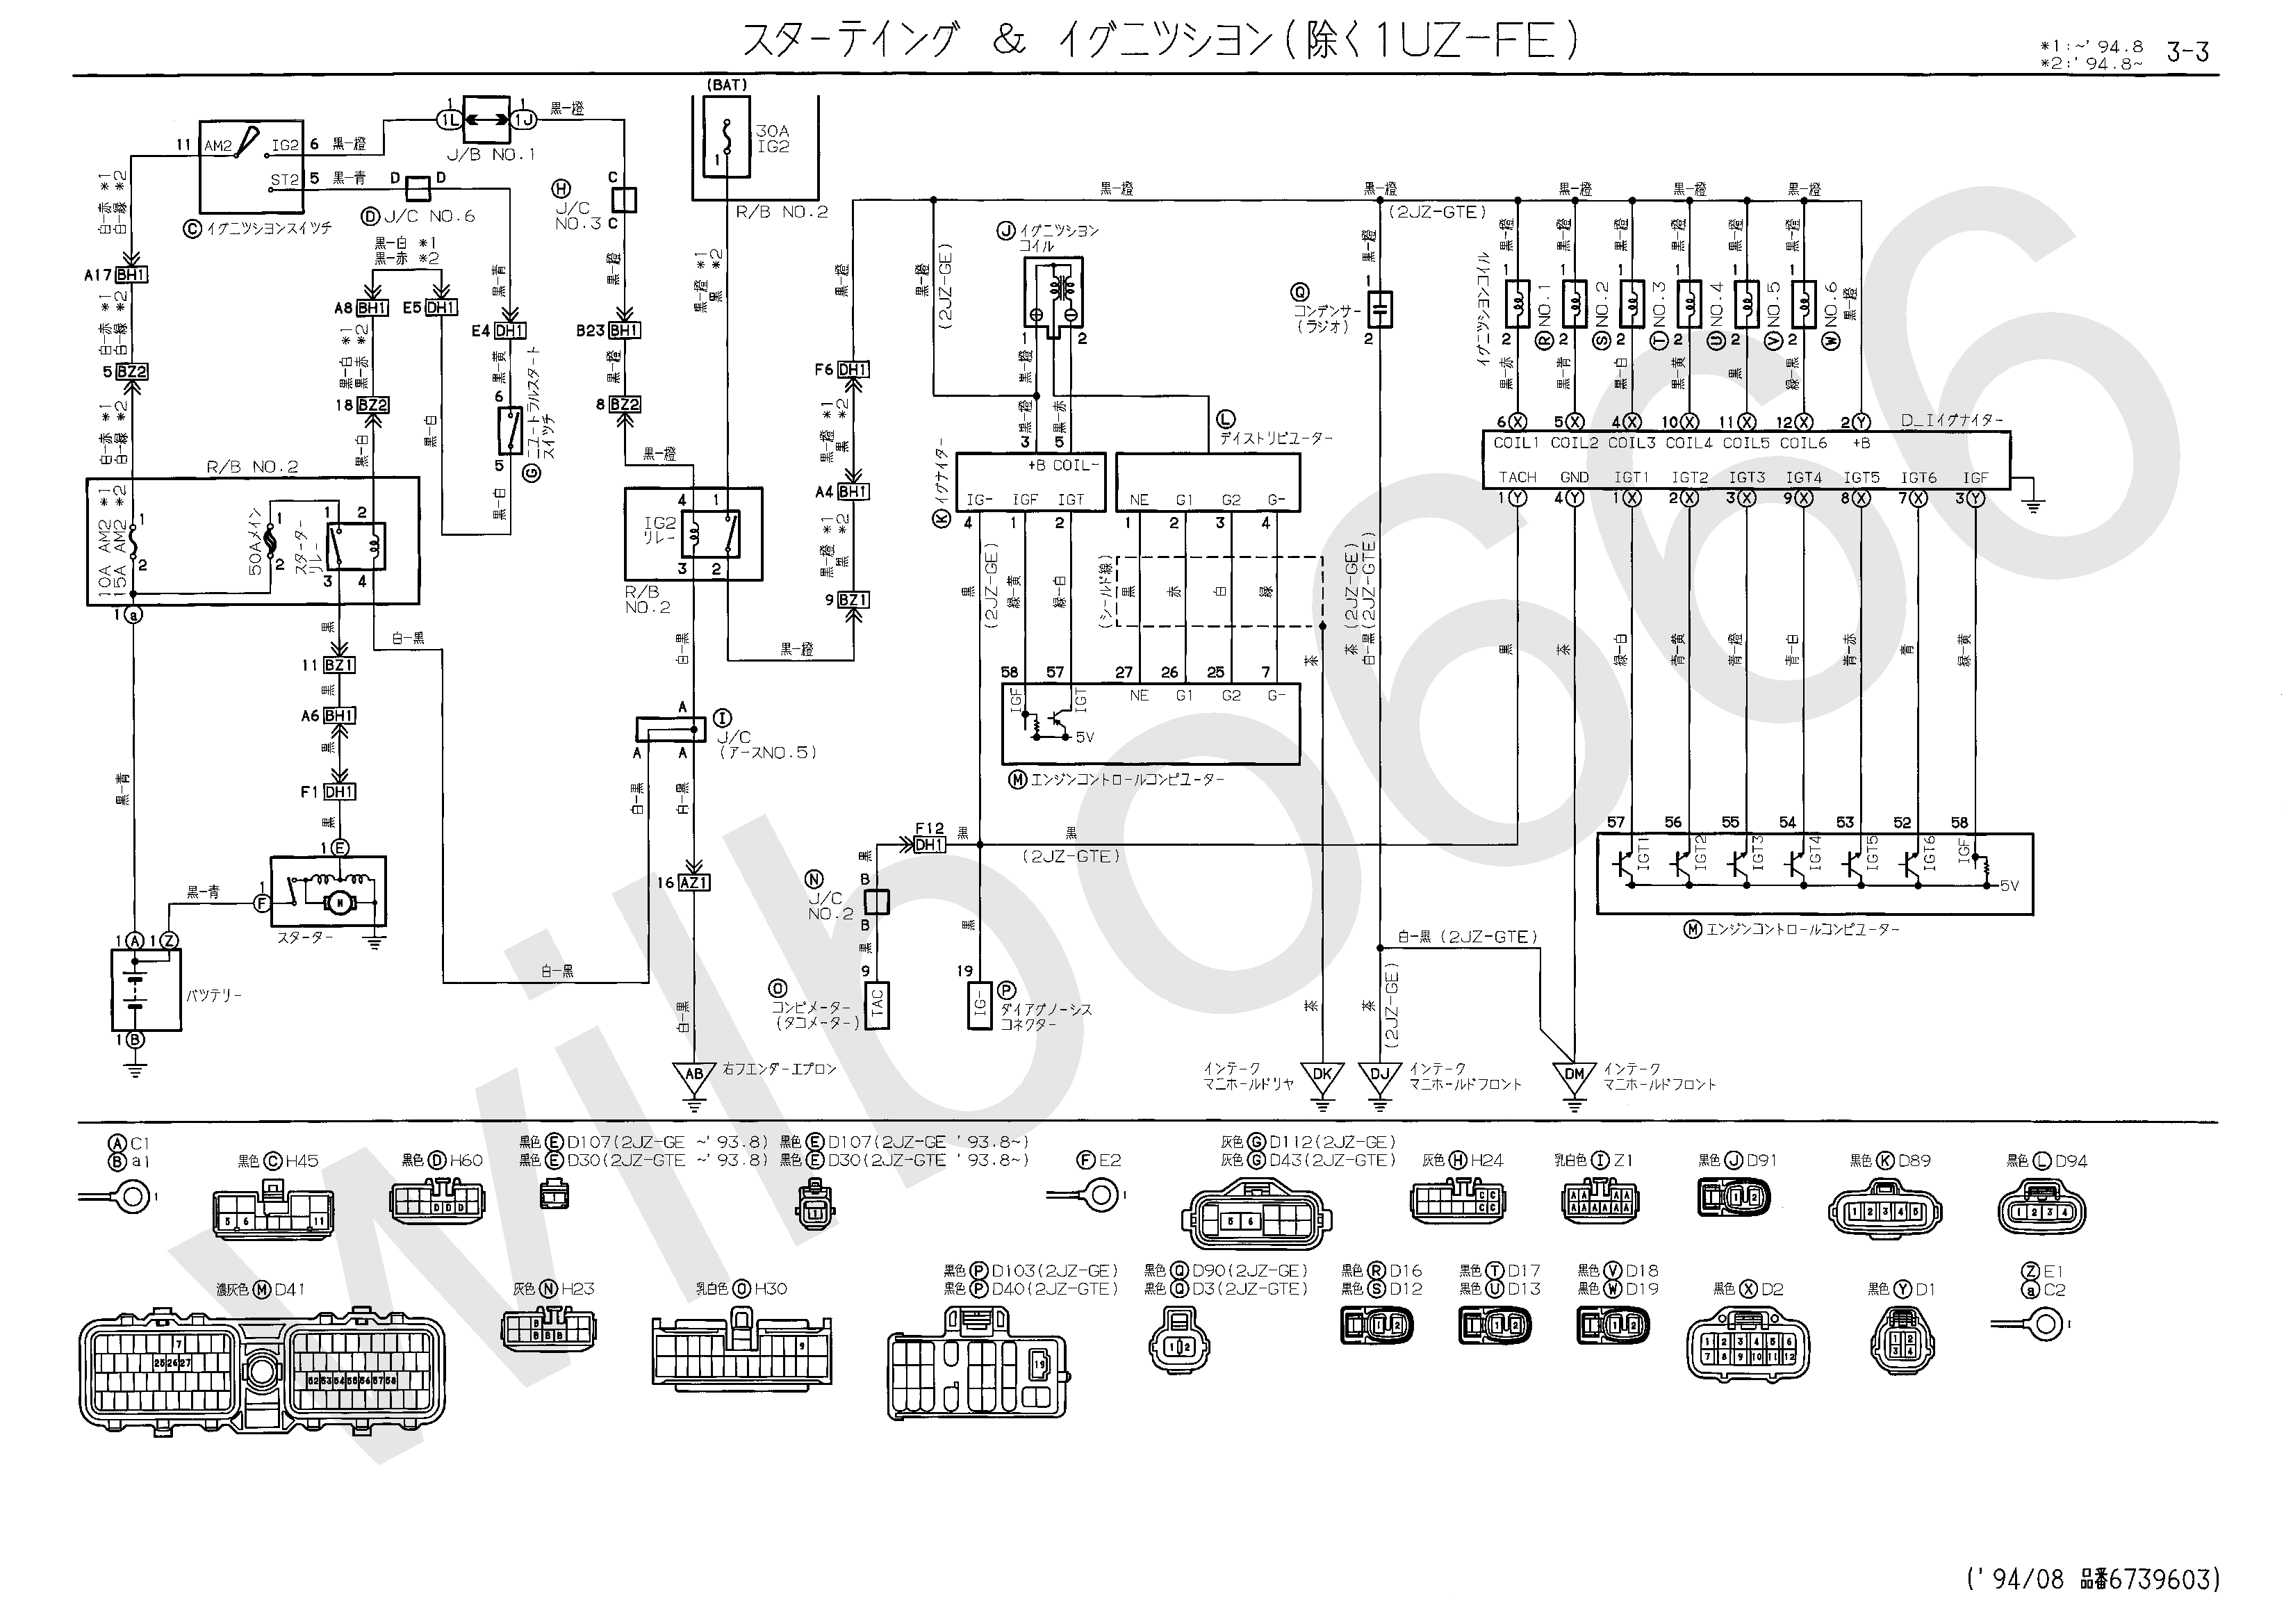 JZS14%23%2C UZS14%23 Electrical Wiring Diagram 6739604 3 3?resize\\\\\\\\\\\\\\\\\\\\\\\\\\\\\\\\\\\\\\\\\\\\\\\\\\\\\\\\\\\\\\\\\\\\\\\\\\\\\\\\\\\\\\\\\\\\\\\\\\\\\\\\\\\\\\\\\\\\\\\=665%2C471 nissan sentra radio wiring diagram & nissan altima stereo wiring 1997 nissan altima radio wiring diagram at eliteediting.co